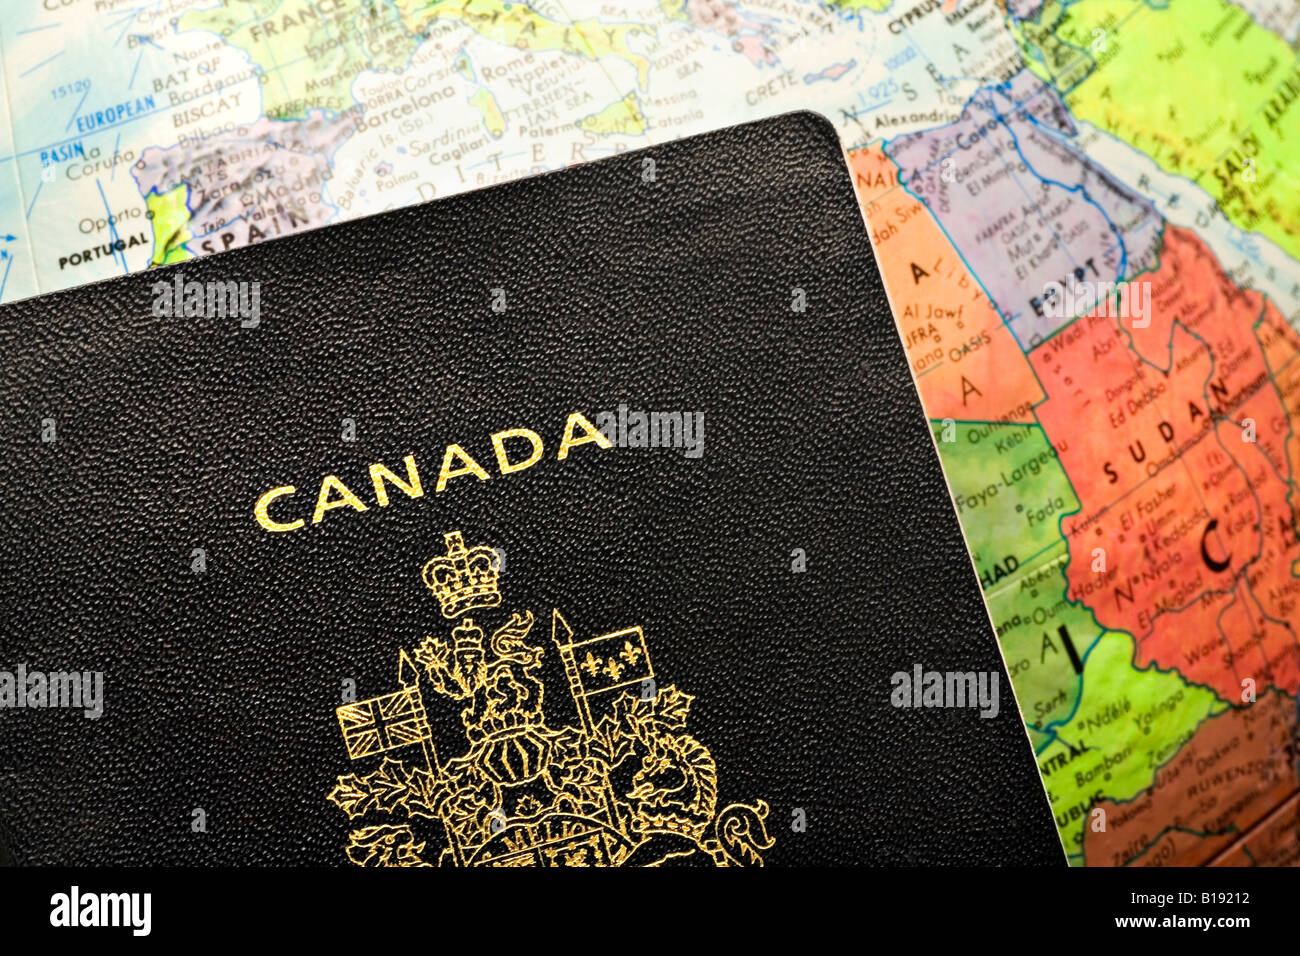 Canadian passport laid over a map of Africa - Stock Image